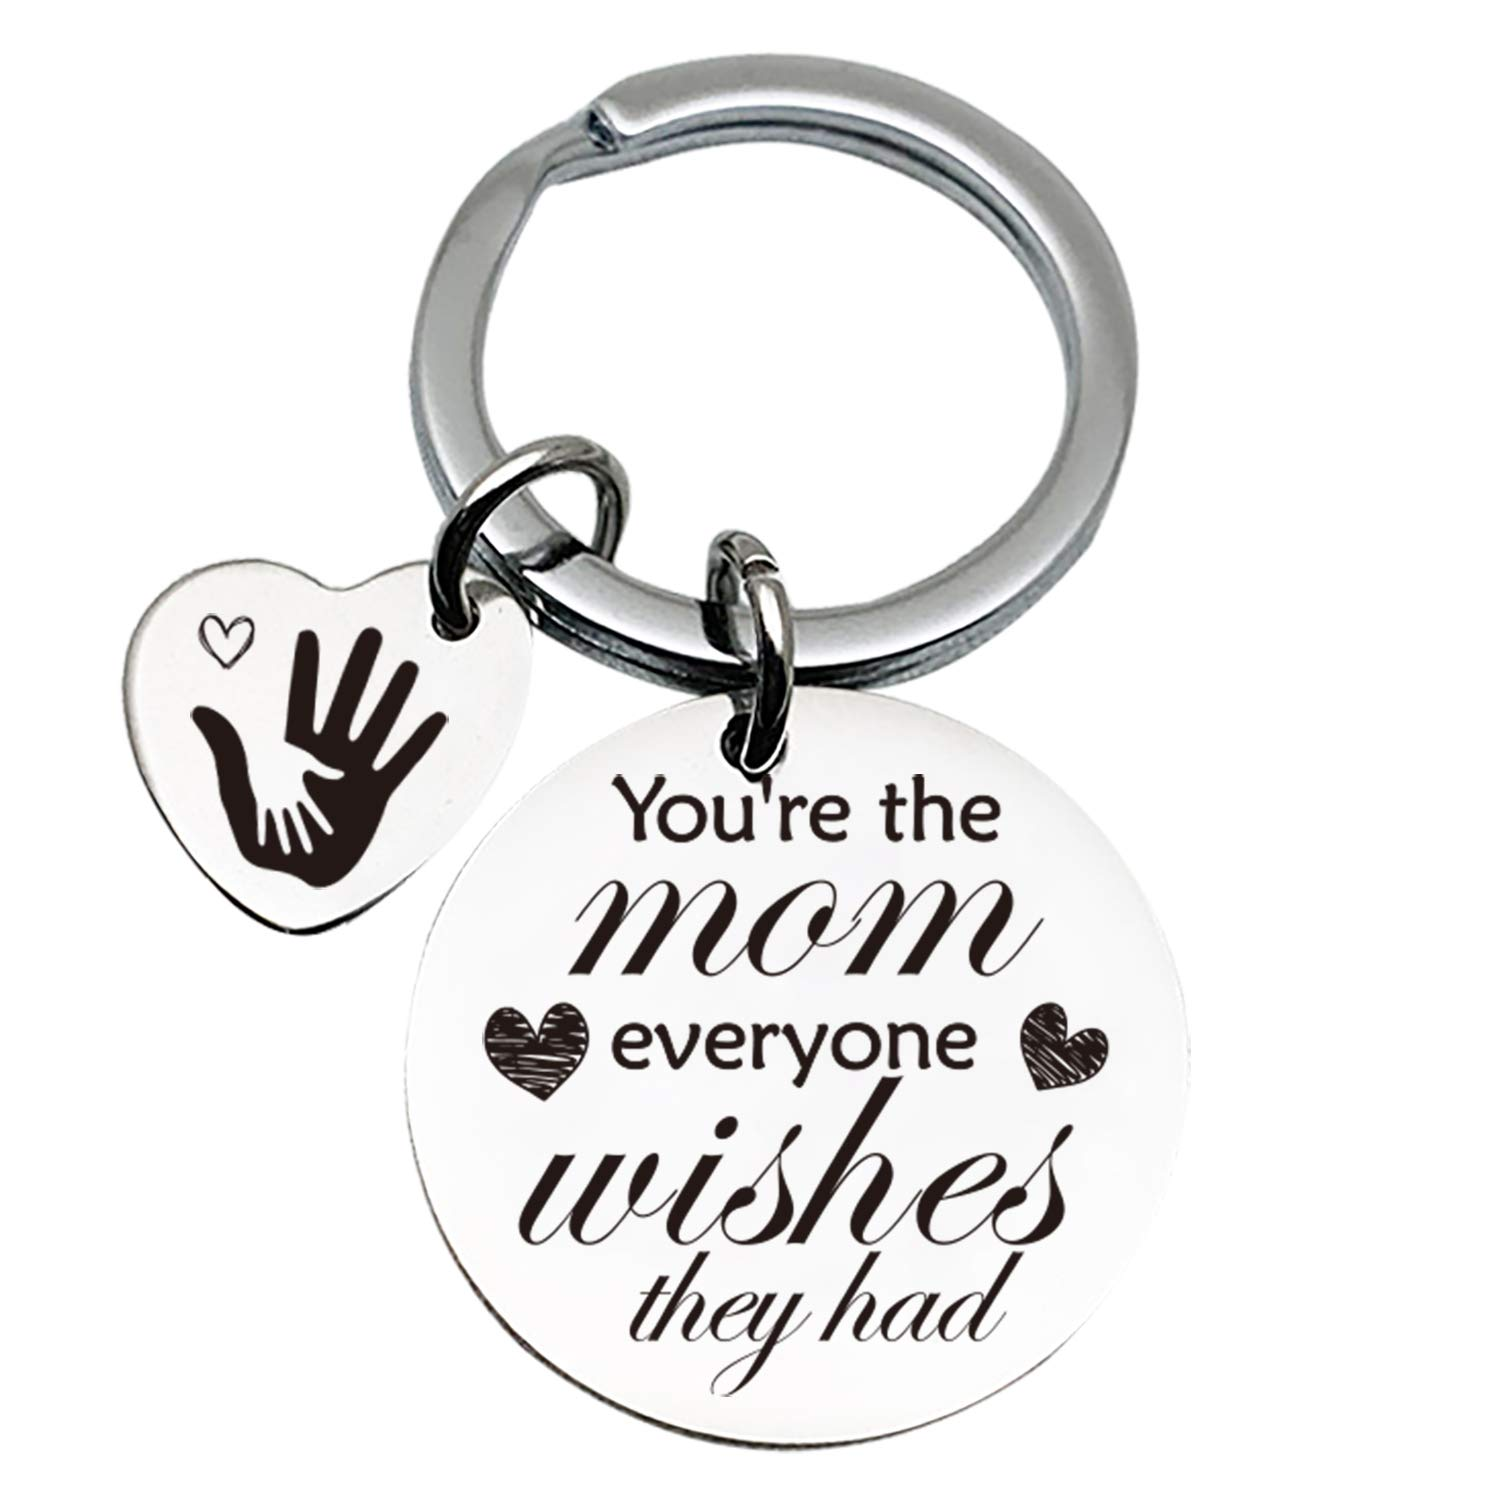 Mother Love Quotes Stainless Steel Key Chain Ring - Mother\'s Day Keychain -  Best Mom Birthday Gifts from Son Daughter Husband - You\'re The Mom ...